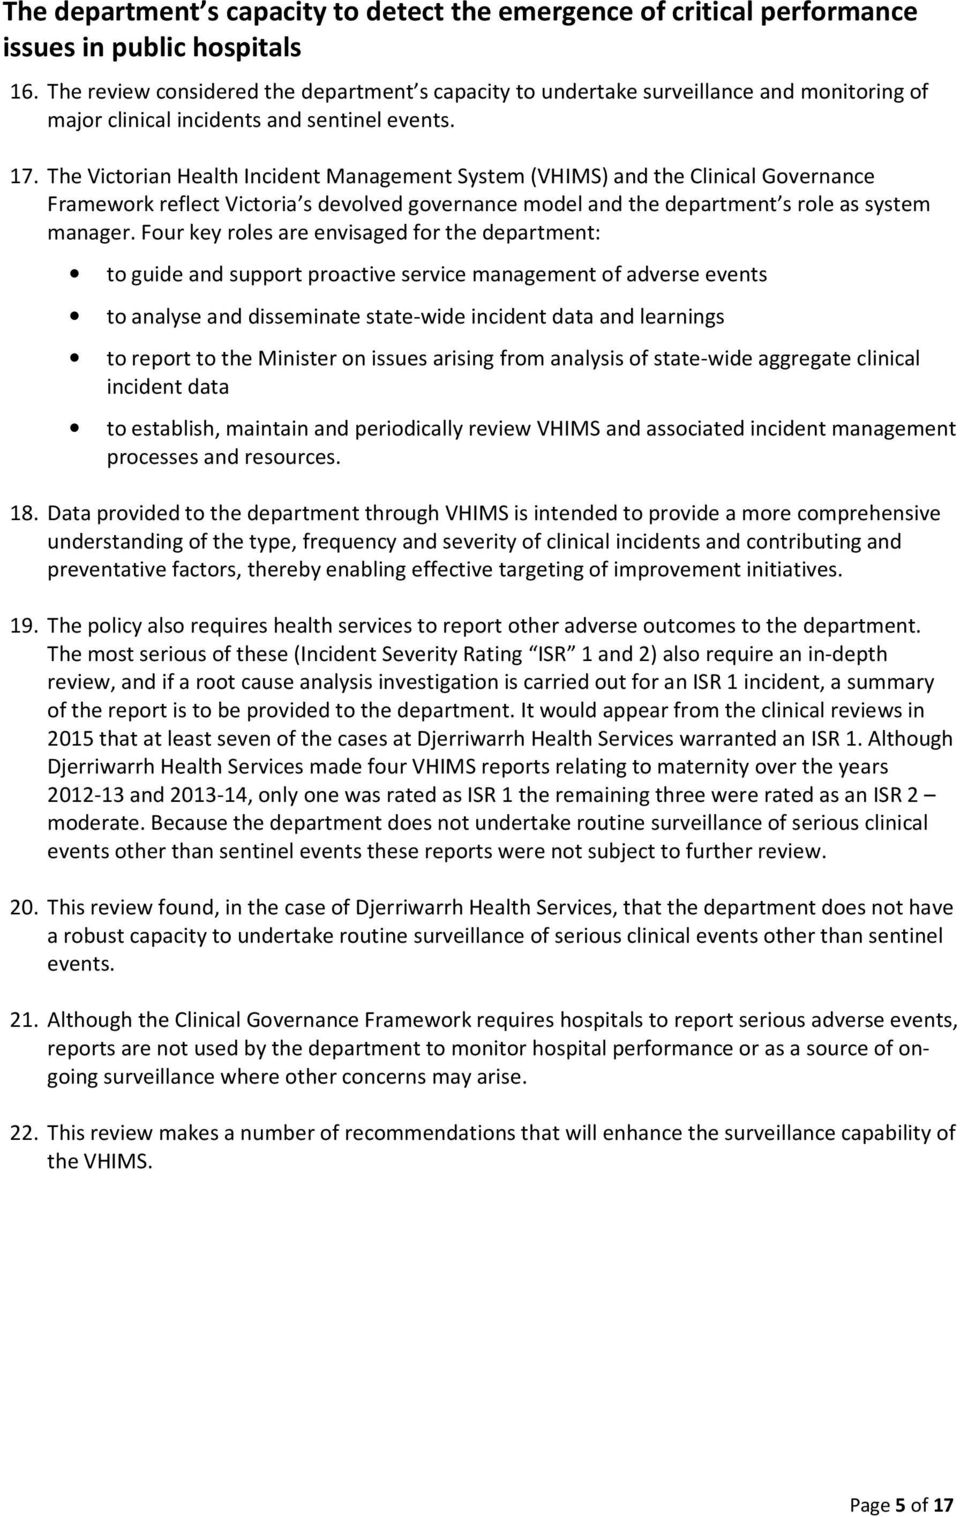 The Victorian Health Incident Management System (VHIMS) and the Clinical Governance Framework reflect Victoria s devolved governance model and the department s role as system manager.